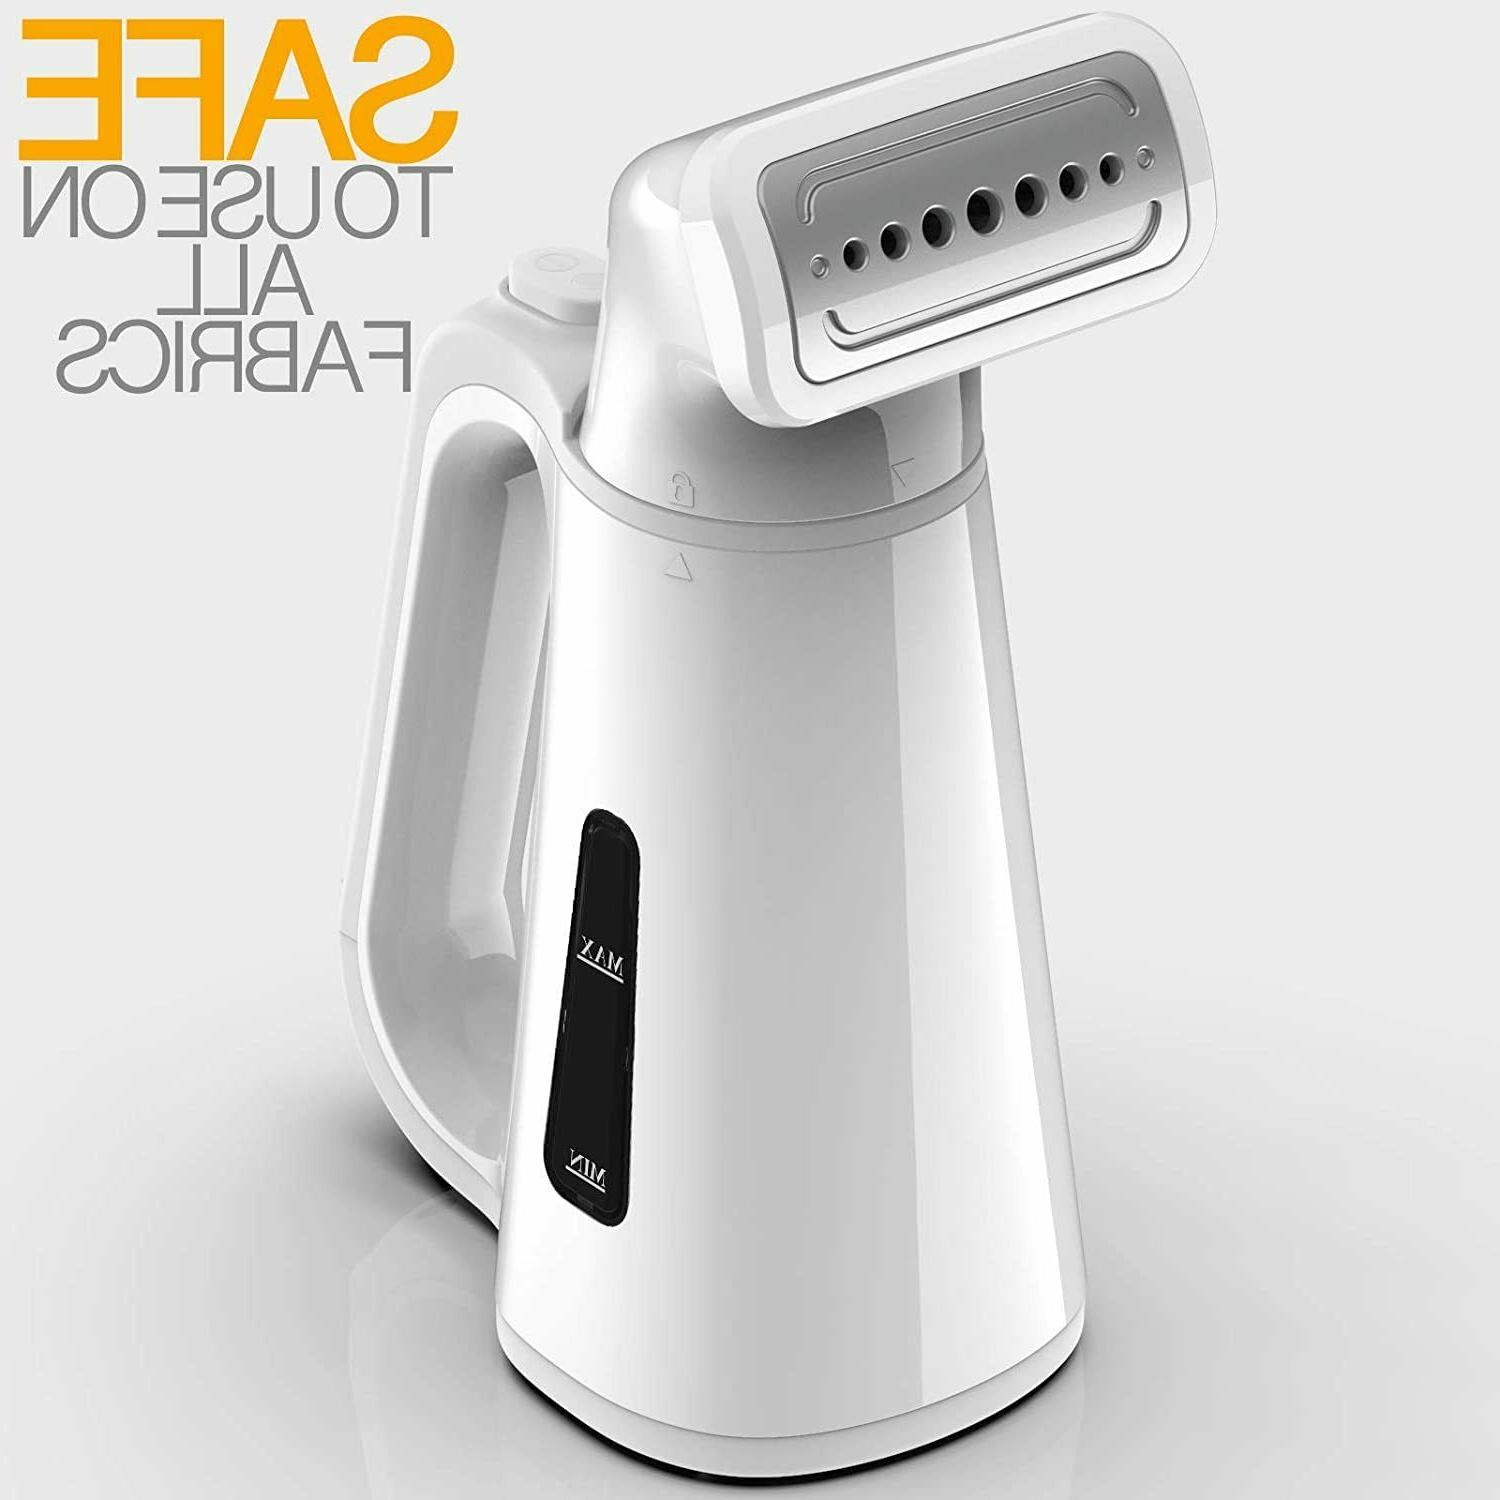 Portable Hand Held Steamer For Clothes Fabric Steam Iron NEW